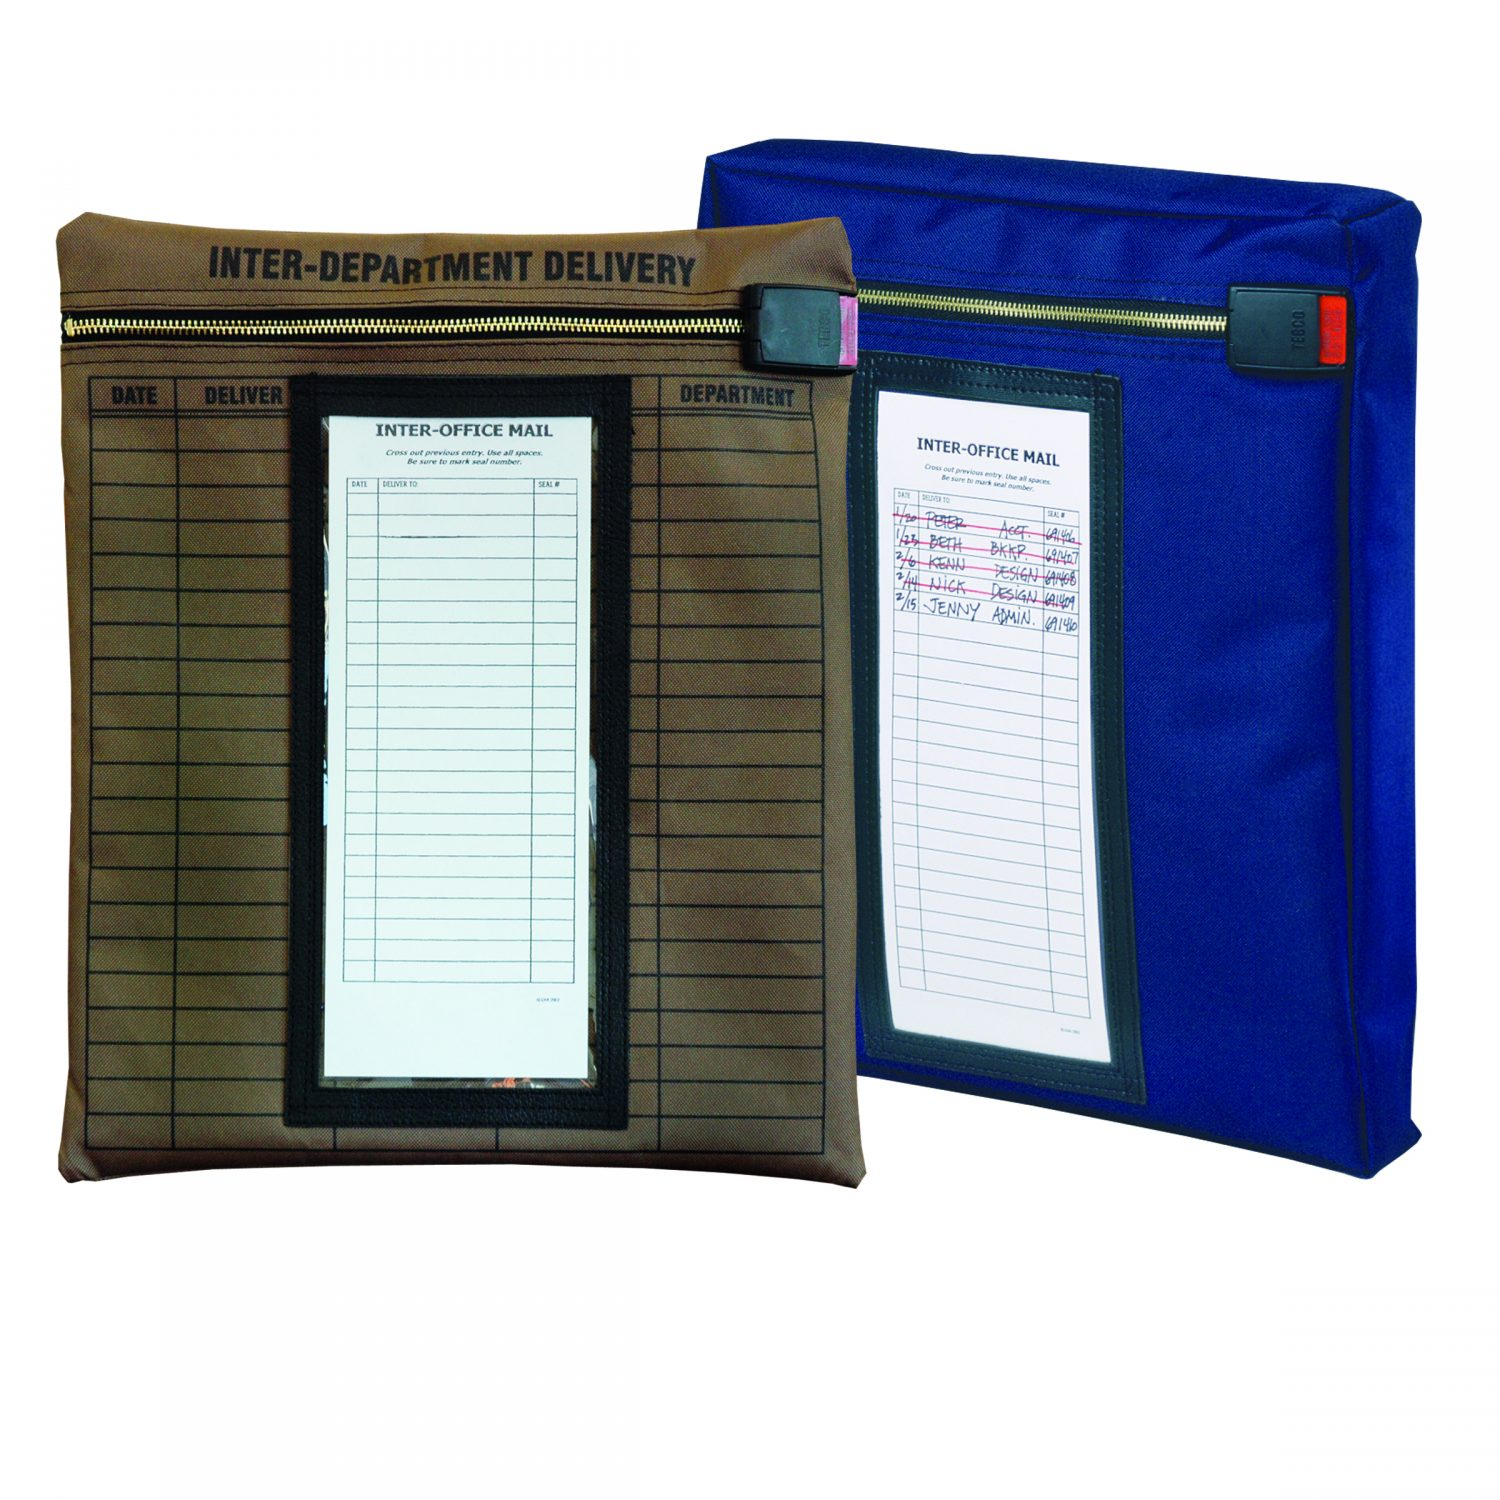 Keyless Security Doent Pouch Inter Office Envelope